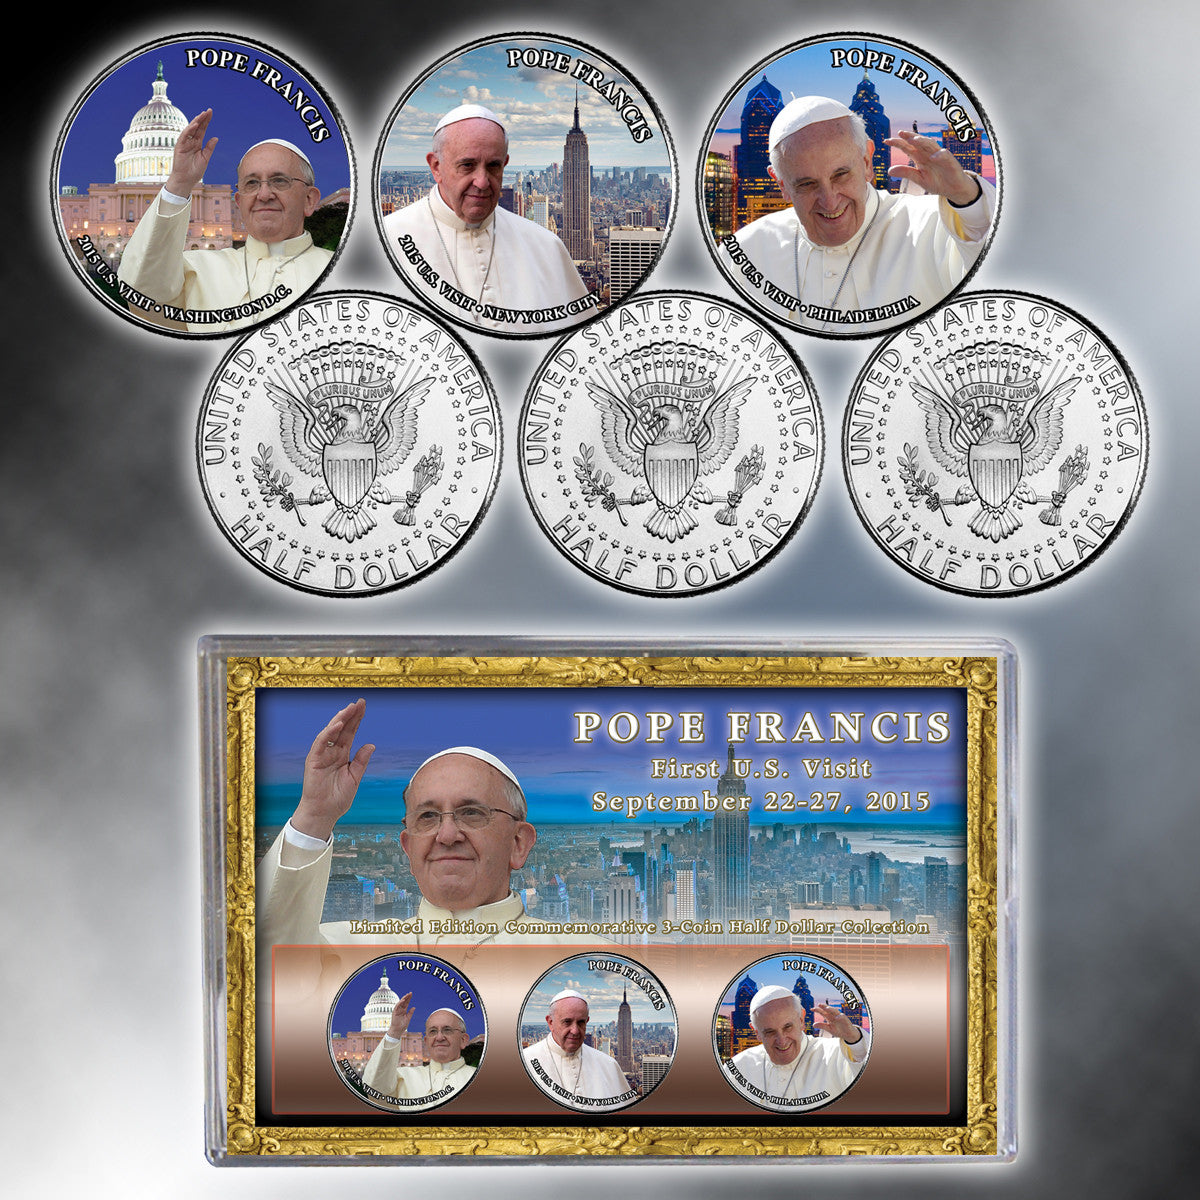 2015 Papal Visit Pope Francis JFK Commemorative Half Dollars